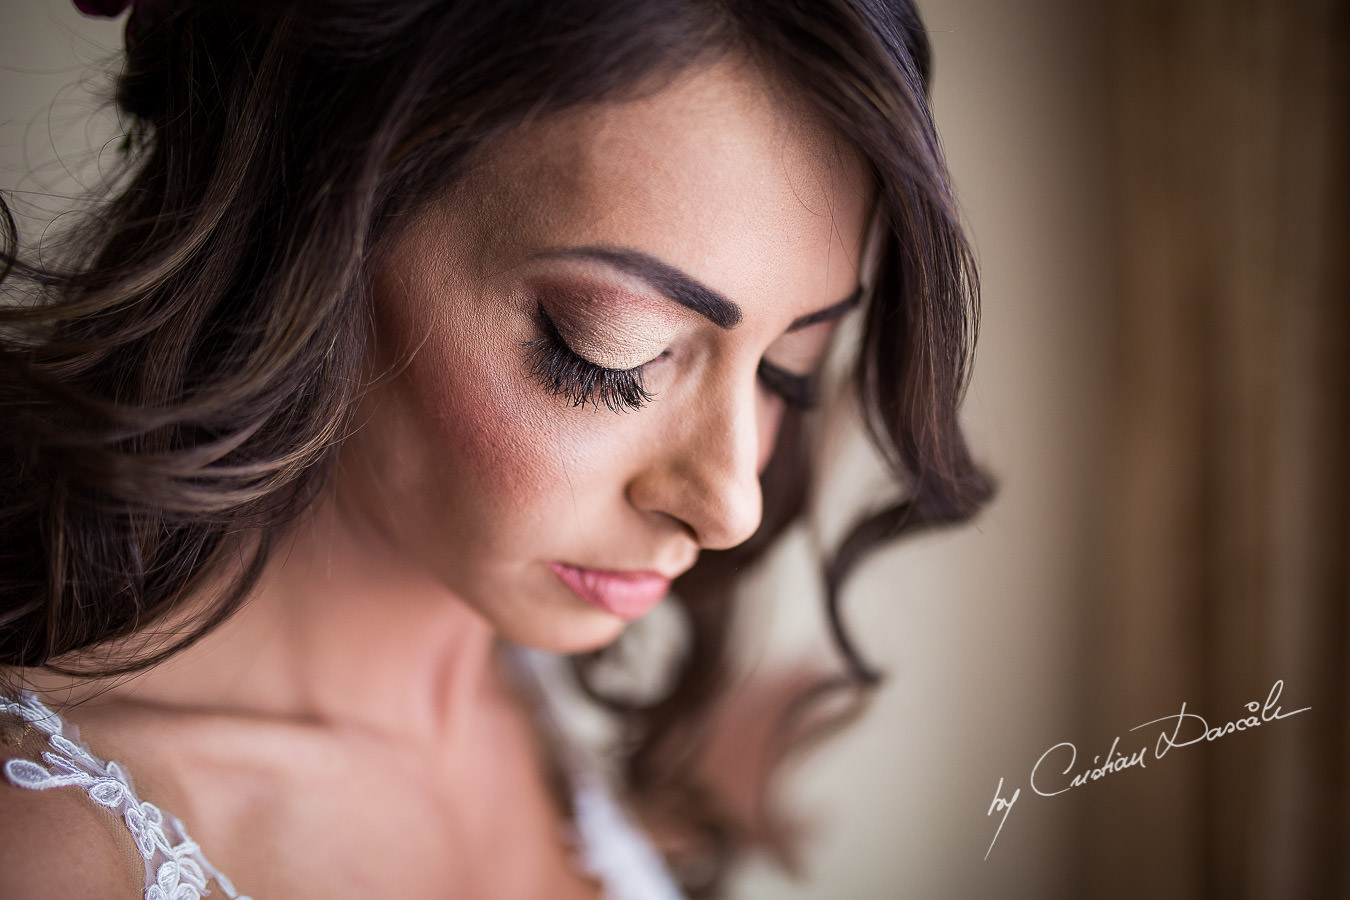 Christiana, the bride, helped by her koumera while getting ready for her wedding ceremony, moments captured at a wedding in Cyprus by Cristian Dascalu Photographer.